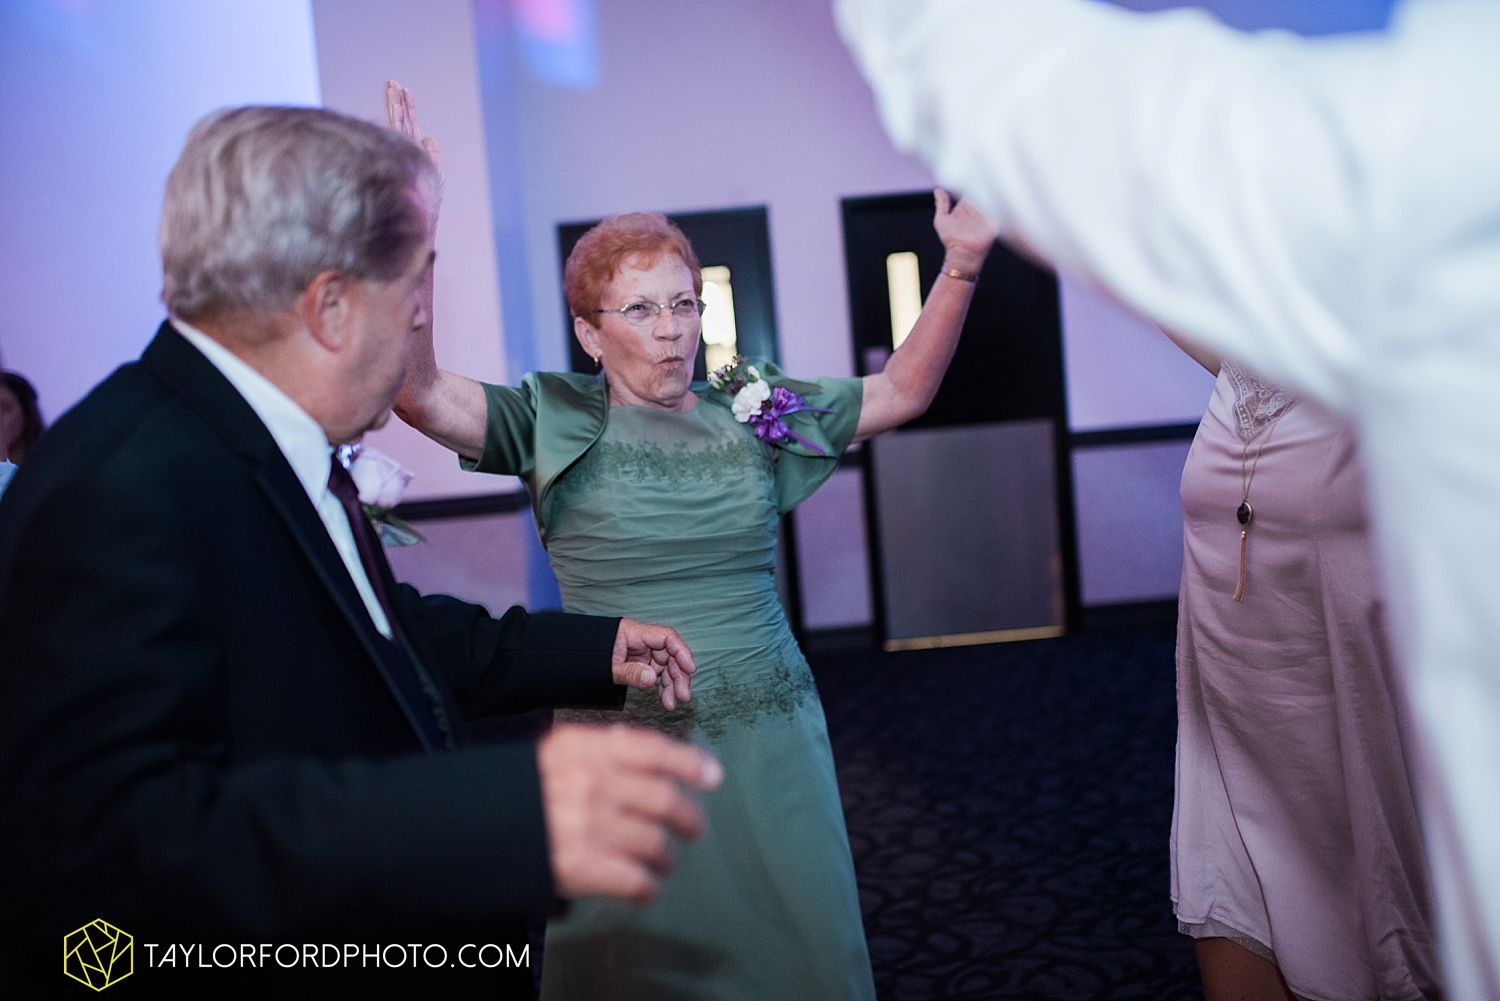 van_wert_ohio_fort_wayne_indiana_wedding_photographer_taylor_ford_cerutis_catering_2852.jpg